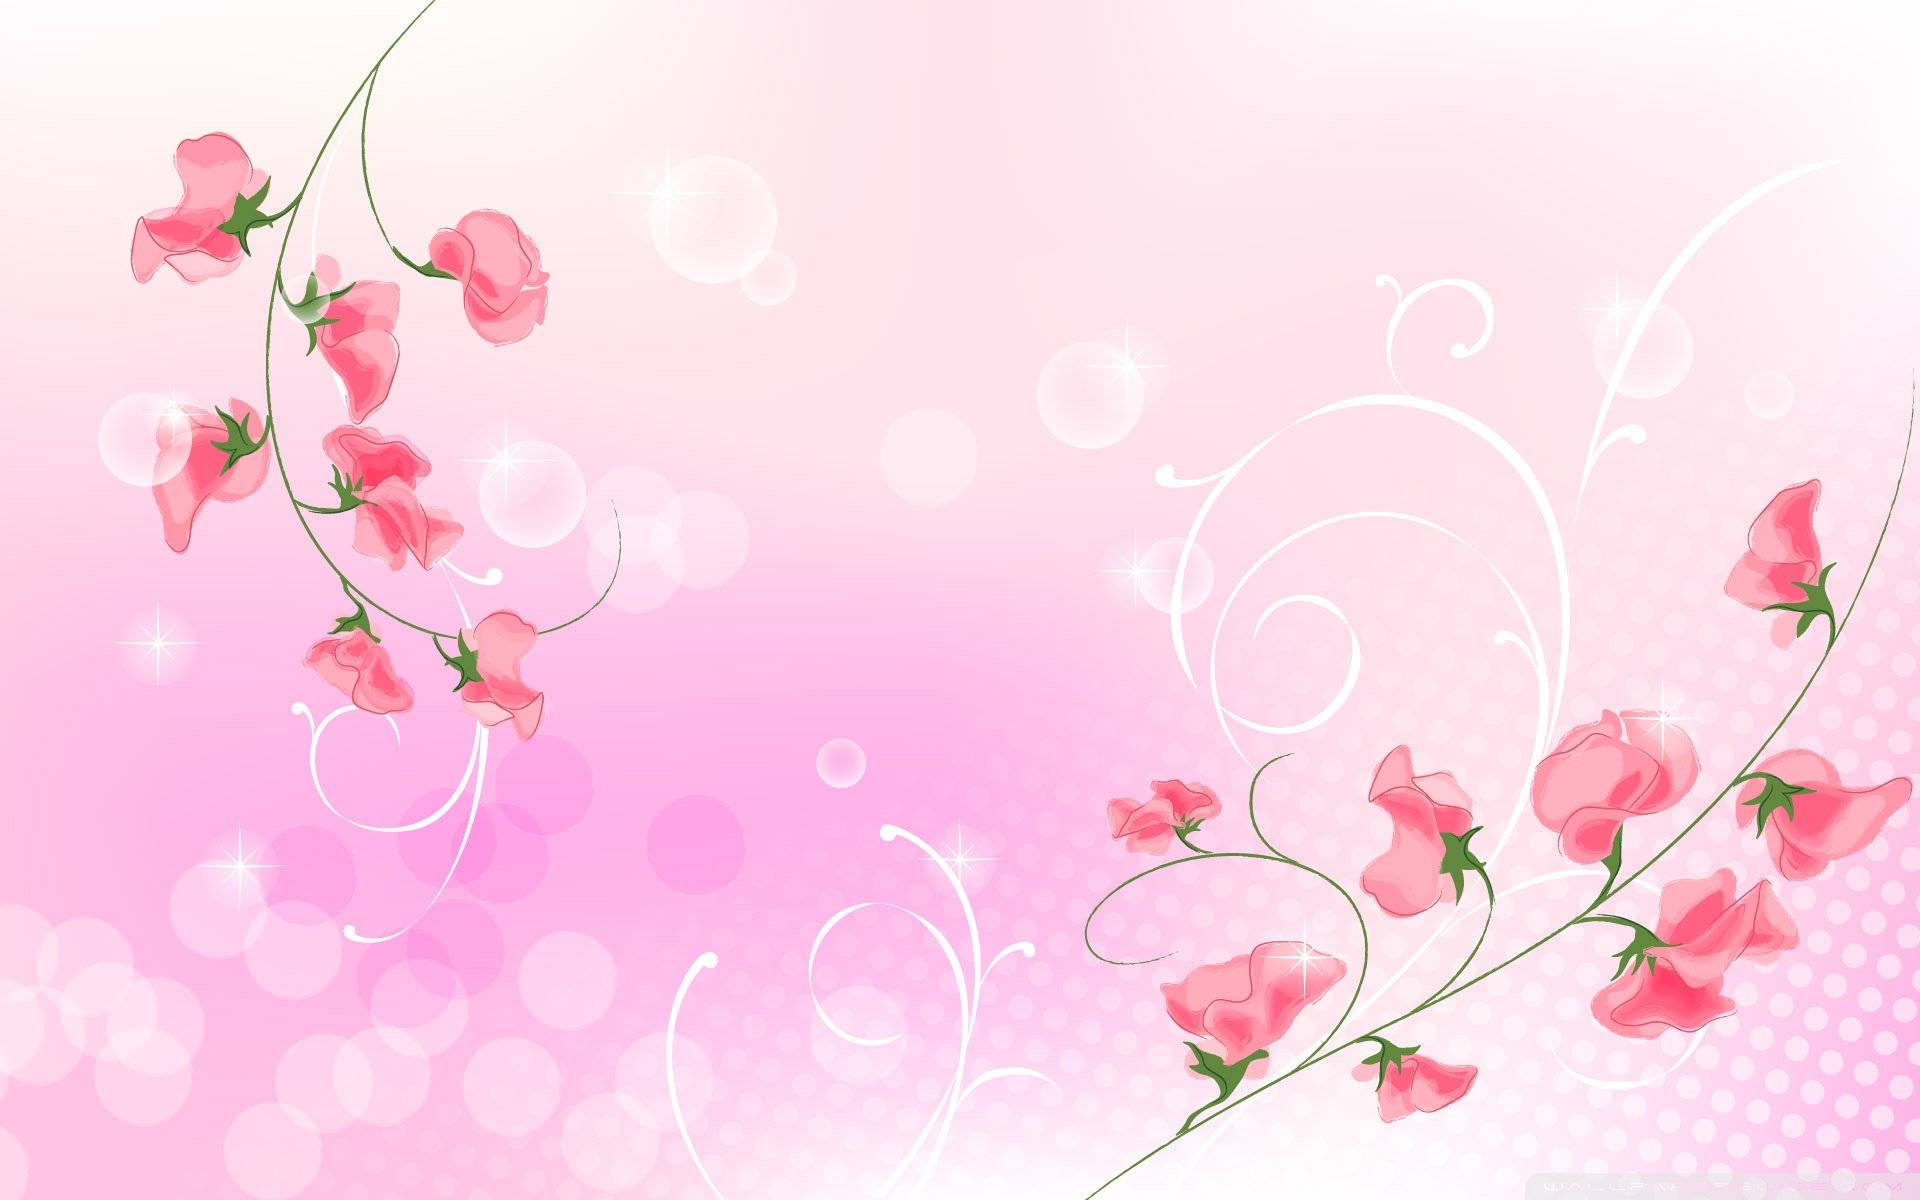 Pink flowers illustration 4k hd desktop wallpaper for 4k ultra hd wide mightylinksfo